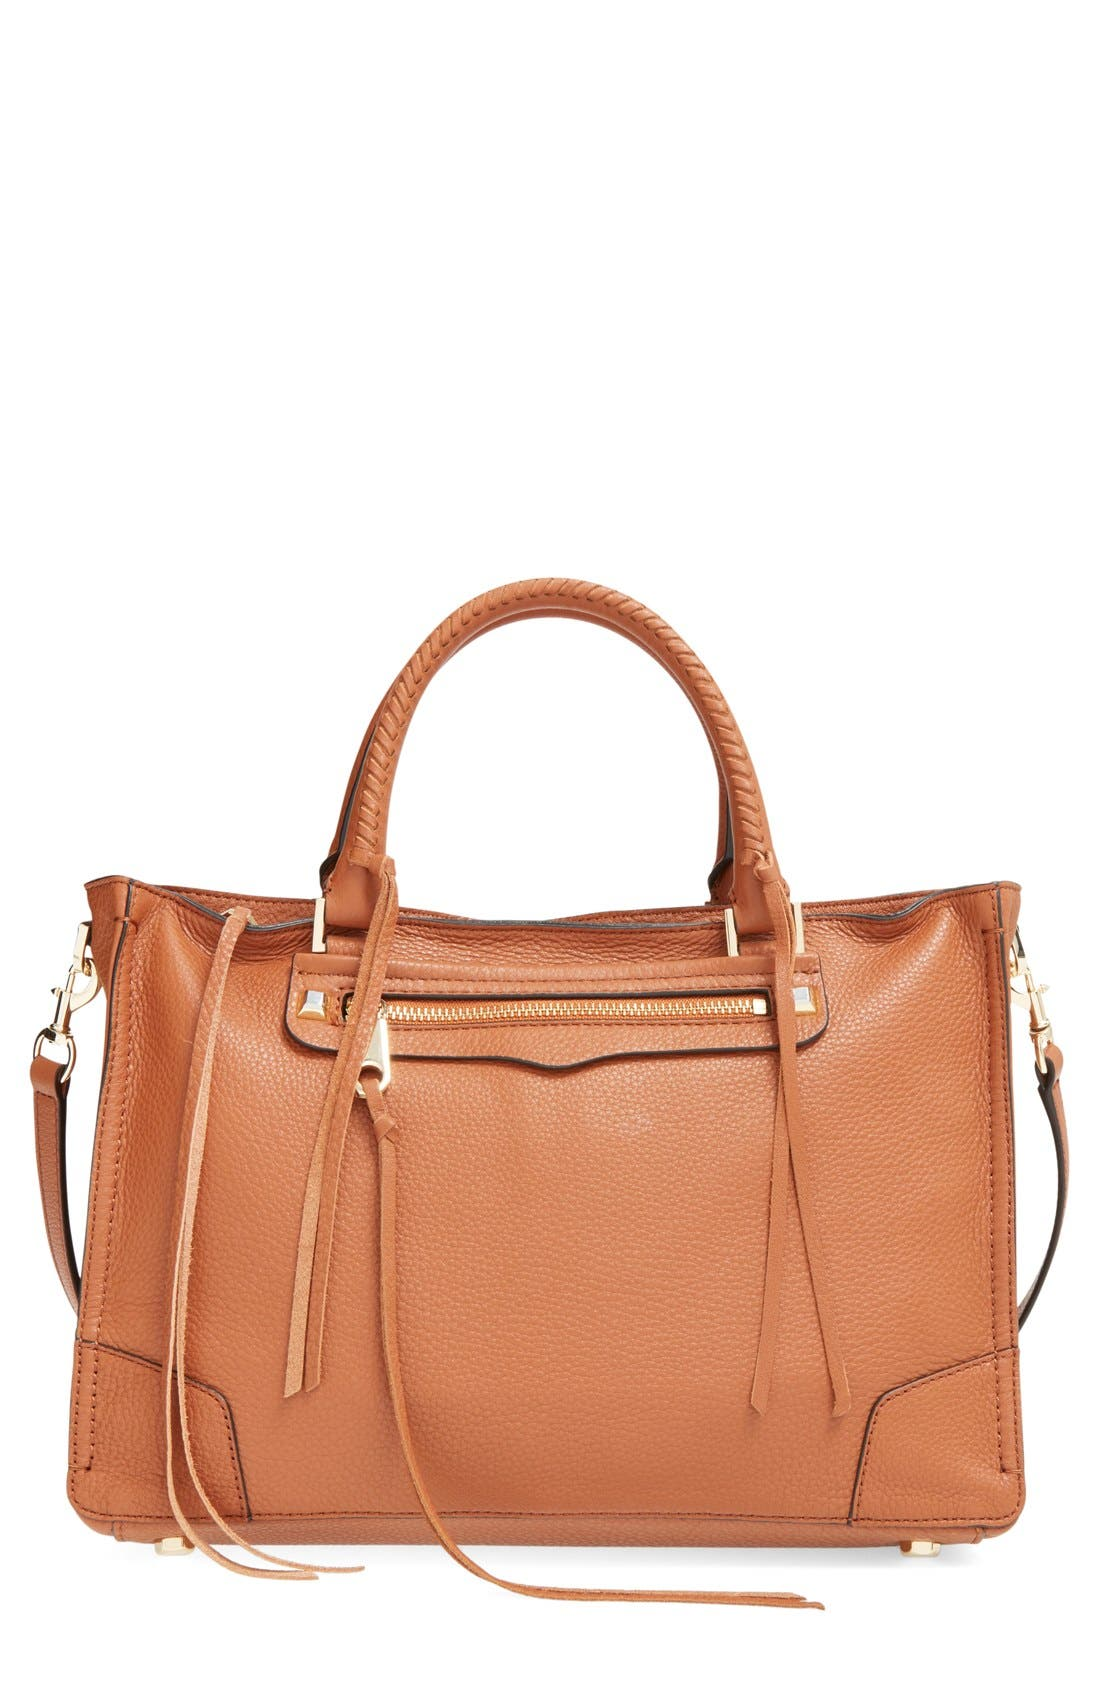 Alternate Image 1 Selected - Rebecca Minkoff 'Regan' Satchel